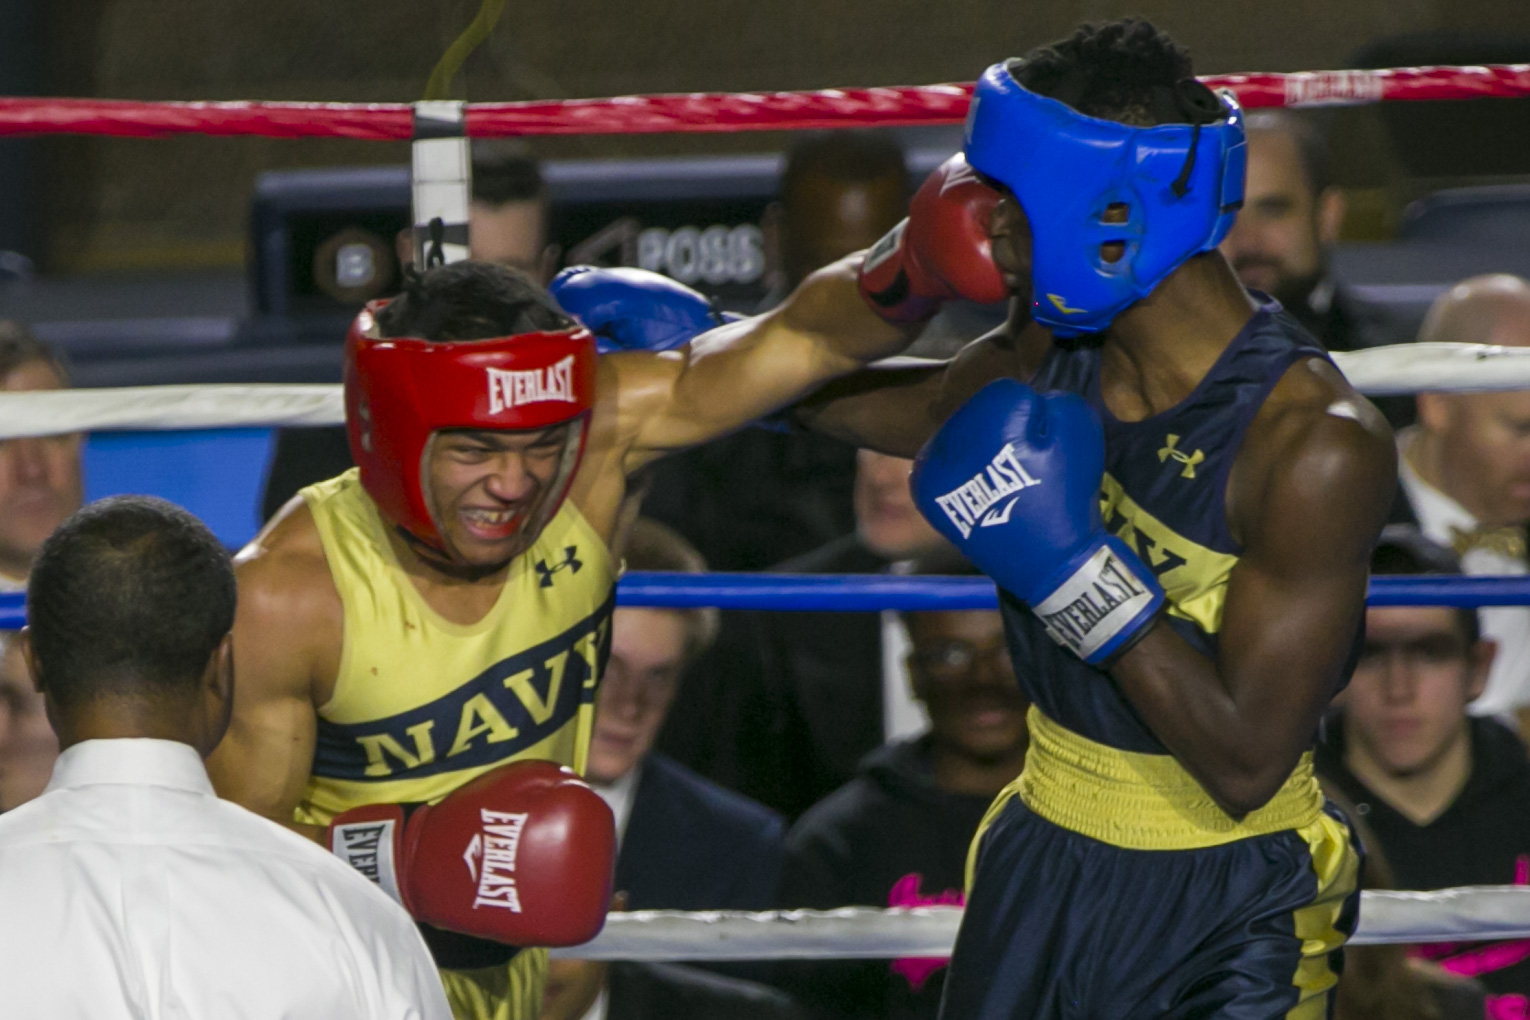 Jordon McDaniel (in gold) from East Chicago, IN, throws a punch into Kendell Louis (in blue) from Miami, FL in the 147-lb weight class bout during the United States Naval Academy's 77th Brigade Boxing Championships held on Feb. 23, 2018. Louis won the fight. (Alan Lessig/Staff)